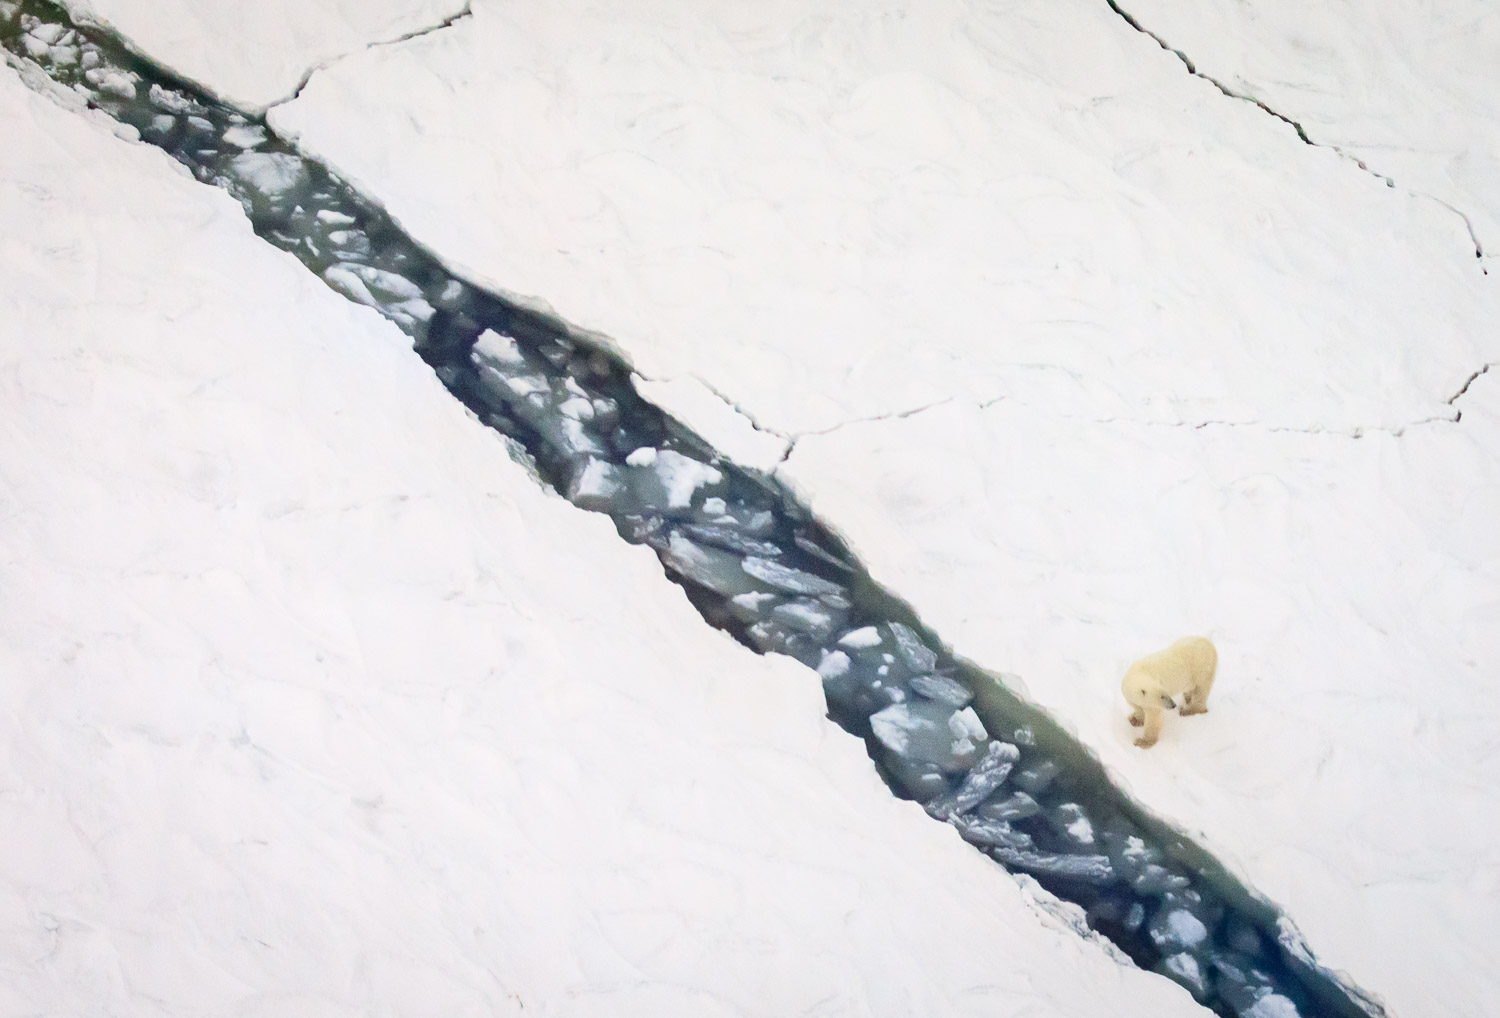 art of seeing polar bears 2 image